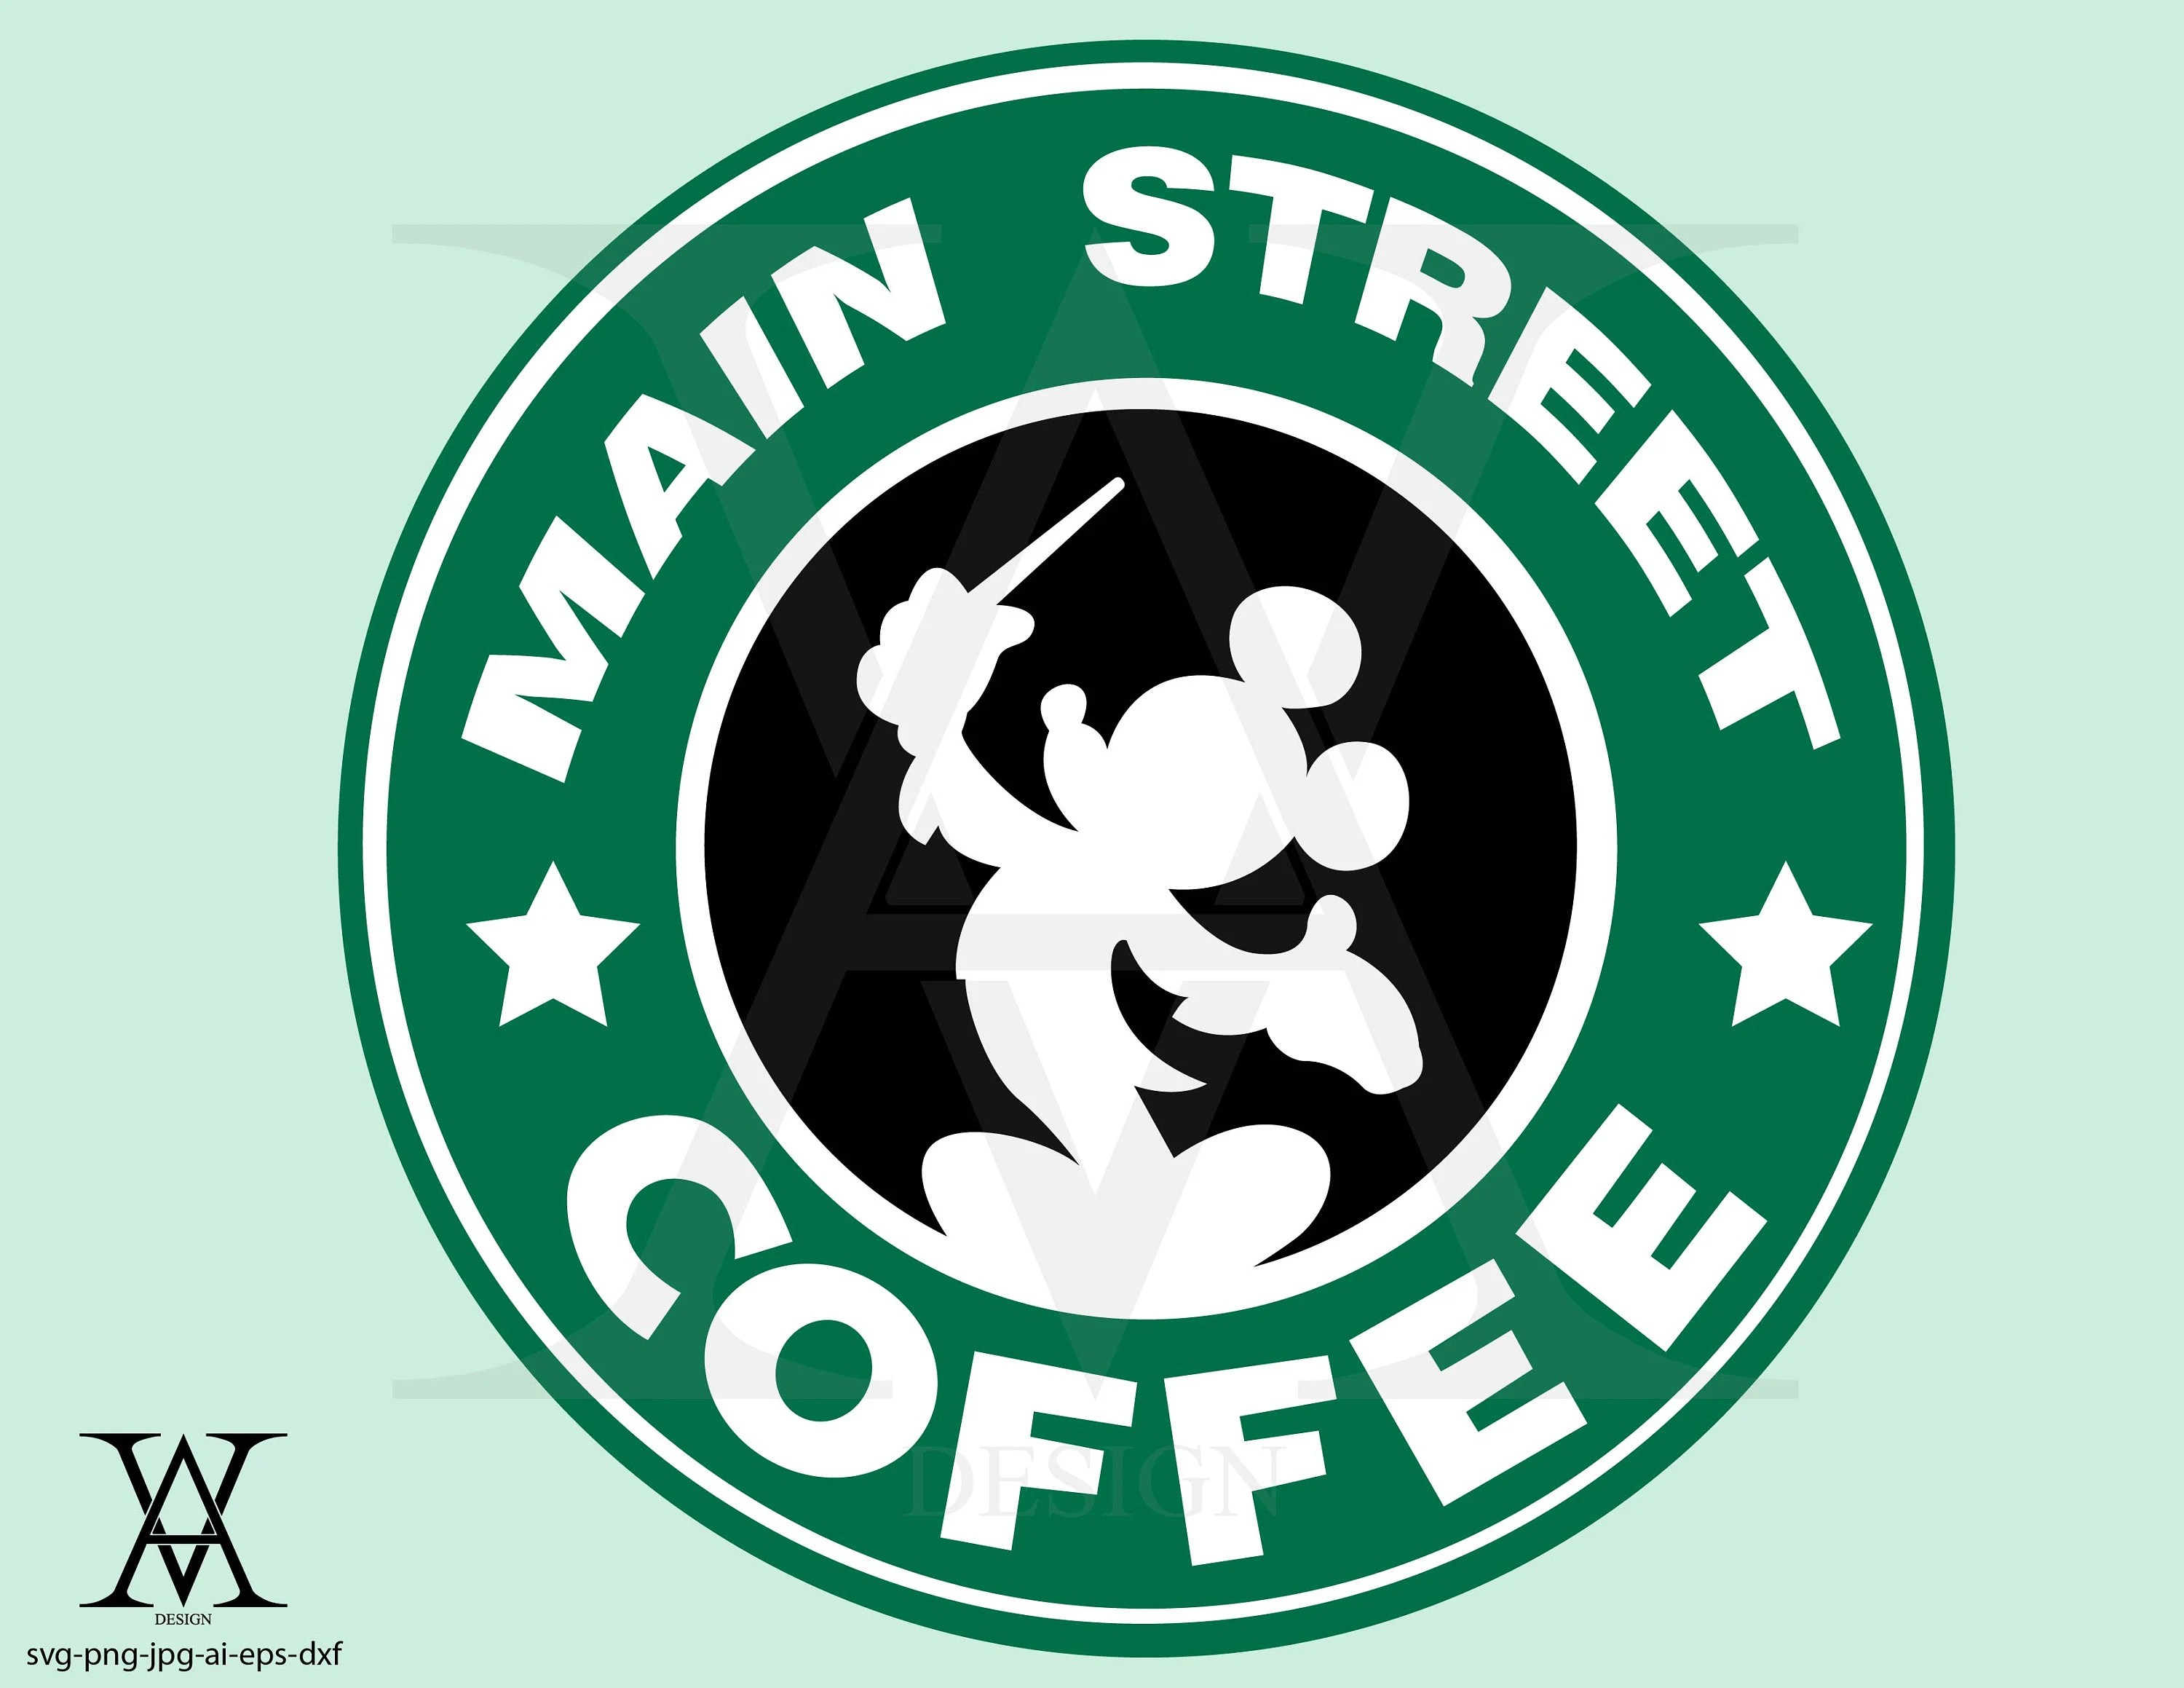 Disney starbucks vector clipart INSTANT DOWNLOAD Etsy